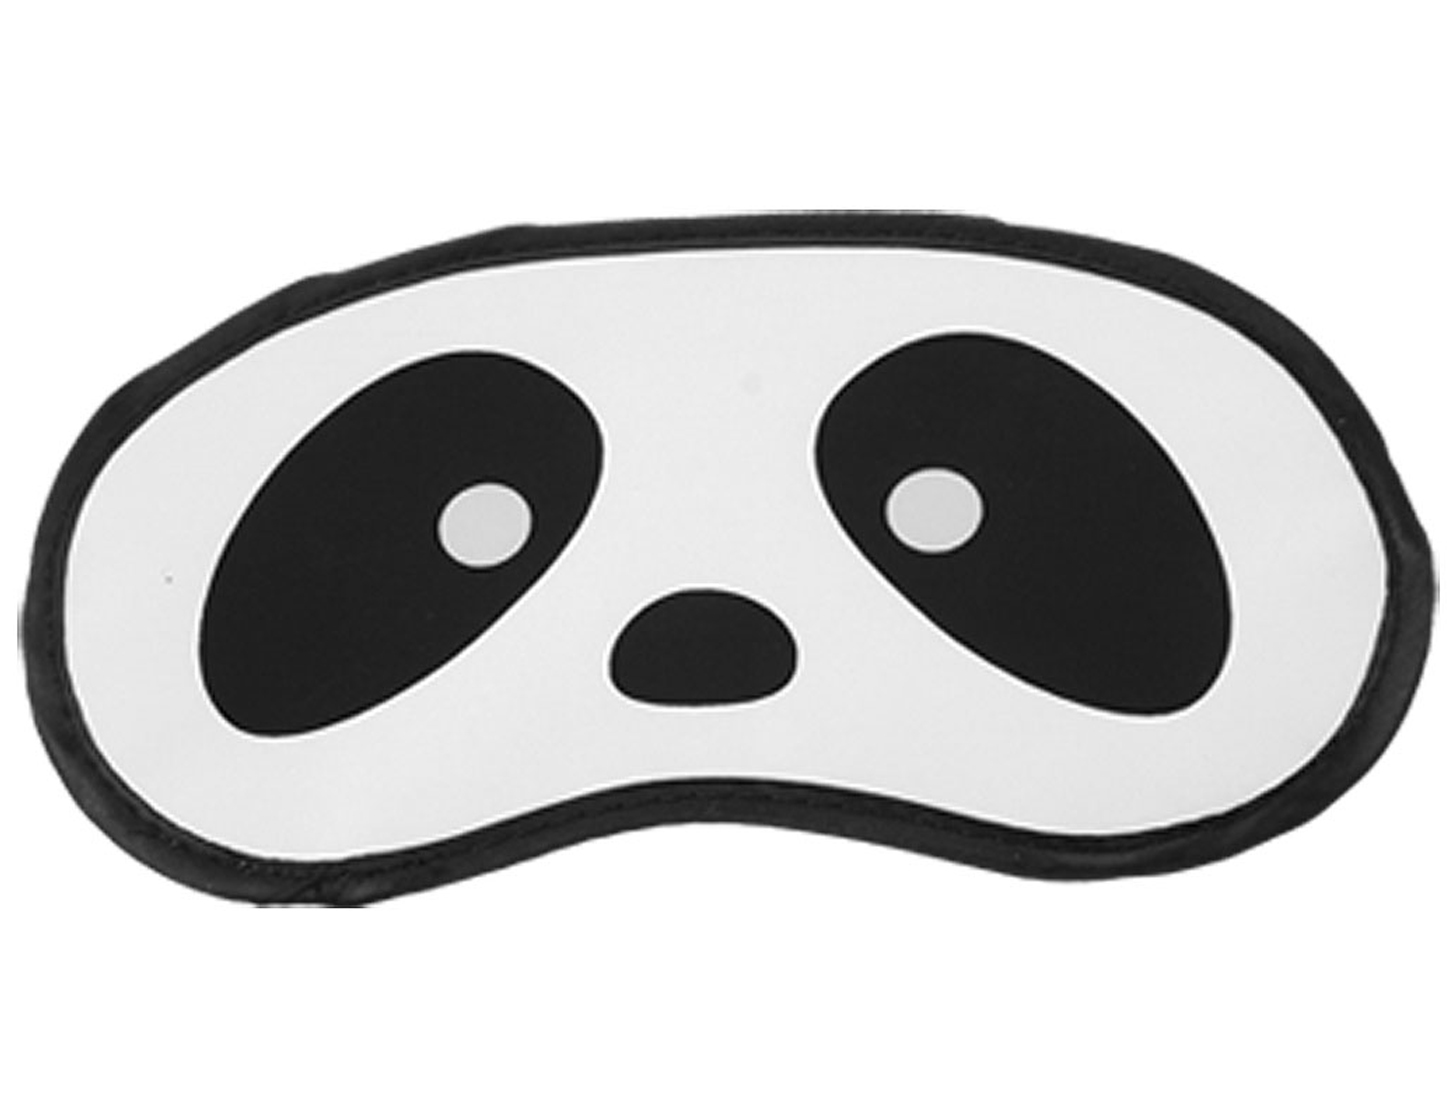 Black White Penda Eyes Print Sleeping Eye Shade Cover Mask Blinder